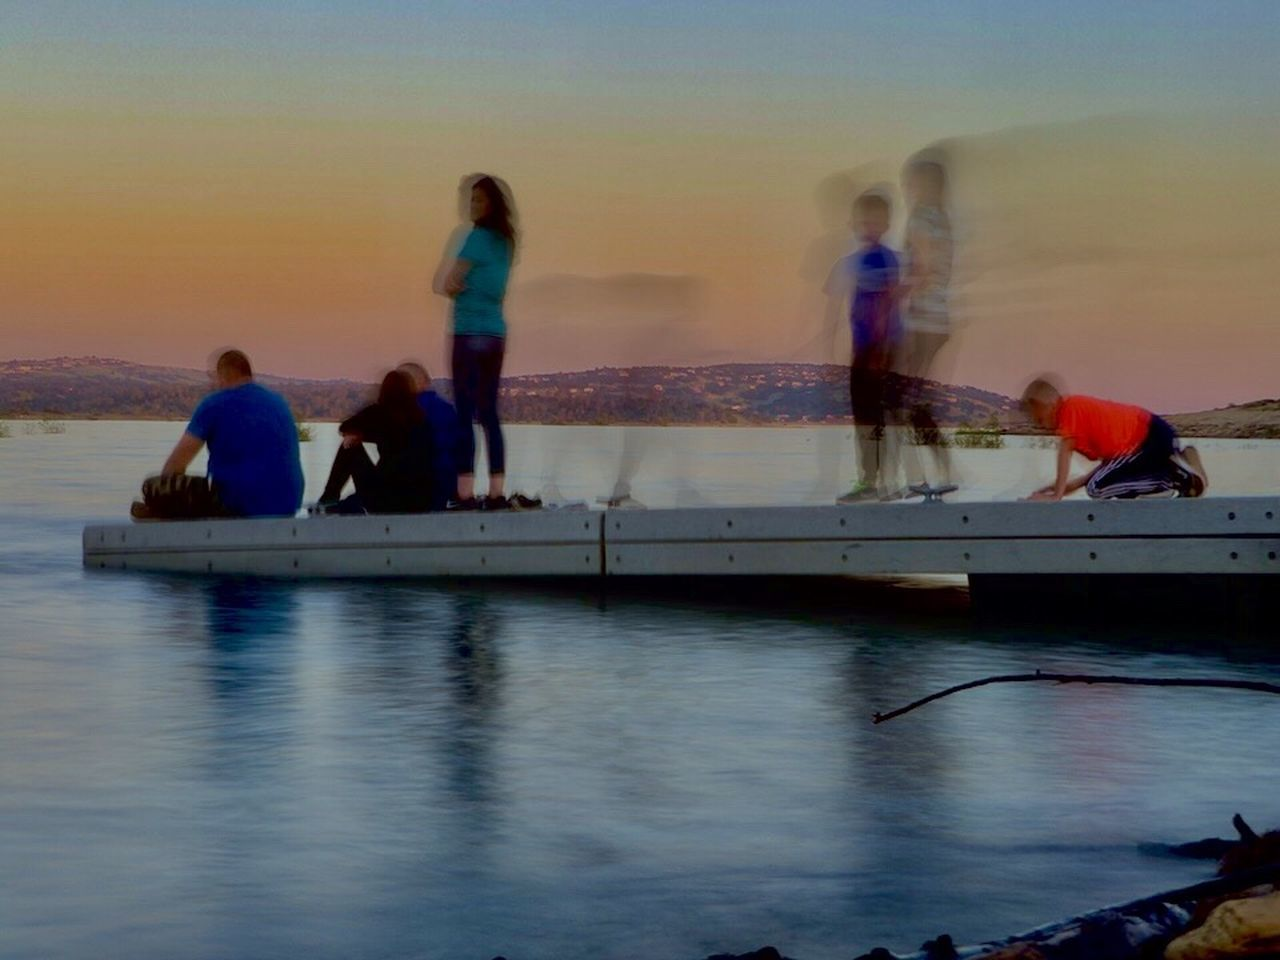 Break The Mold Docks Check This Out Art Is Everywhere EyeEm Best Shots IPhoneography EyeEm Gallery EyeEmBestPics Blurred Blurred Motion Beauty In Nature Lake Outdoors Nature Reflection Sunset Real People